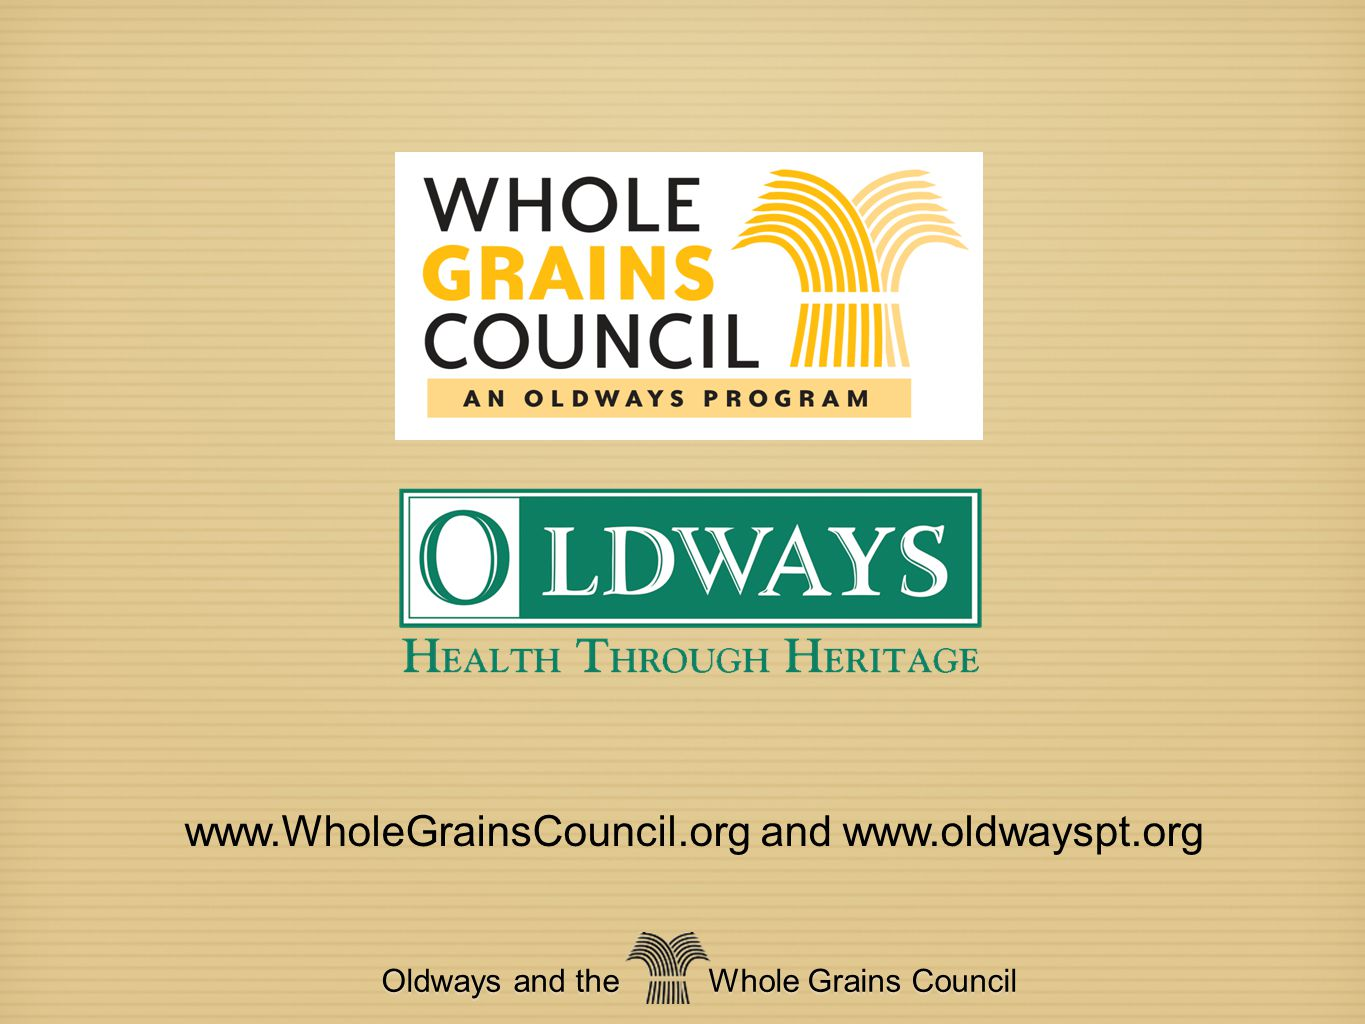 www.WholeGrainsCouncil.org and www.oldwayspt.org